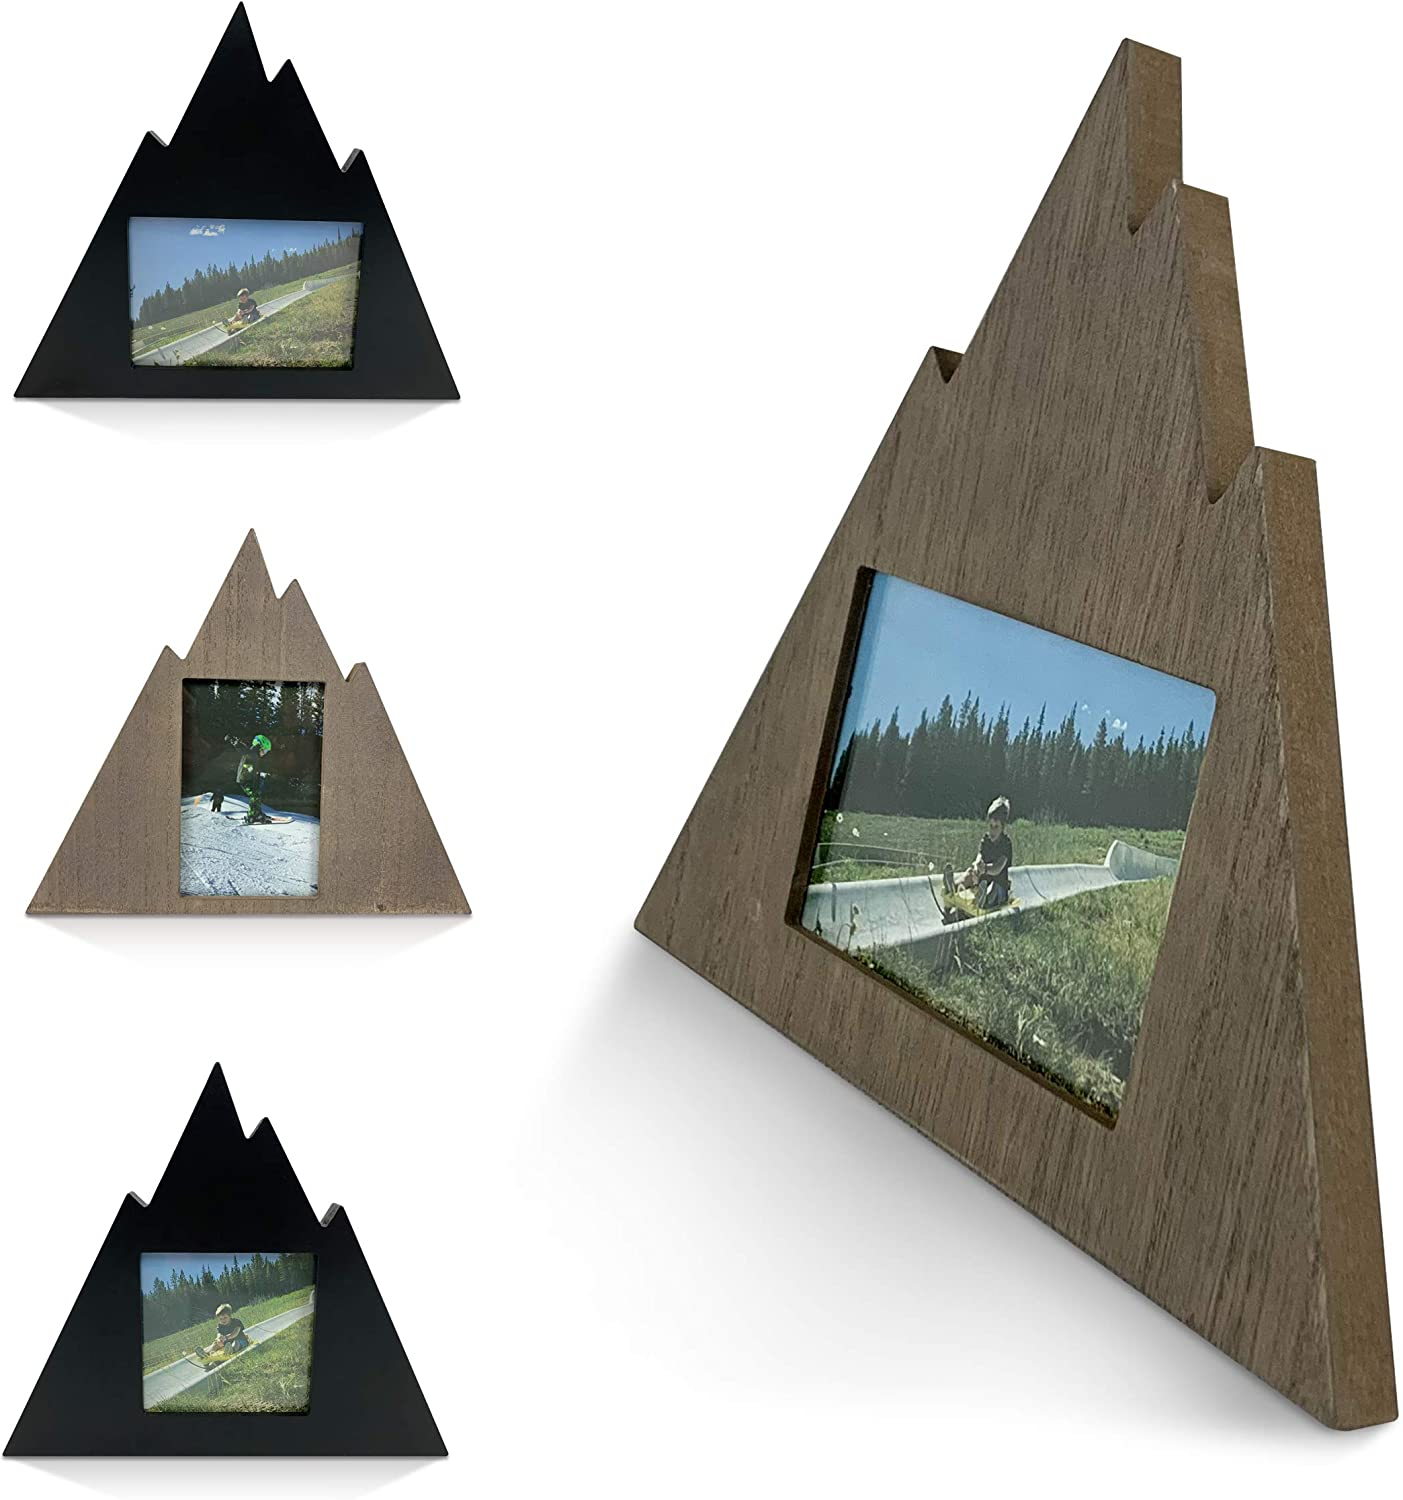 Majestic Mountain Picture Frame - Outdoor Gifts Photo Frame, Cabin Decor, Woodland Decor, Mountain Decor, Modern Rustic Decor Geometric Picture Frame/Mountain Frame (Rustic Gray - 4x6 - Horizontal)